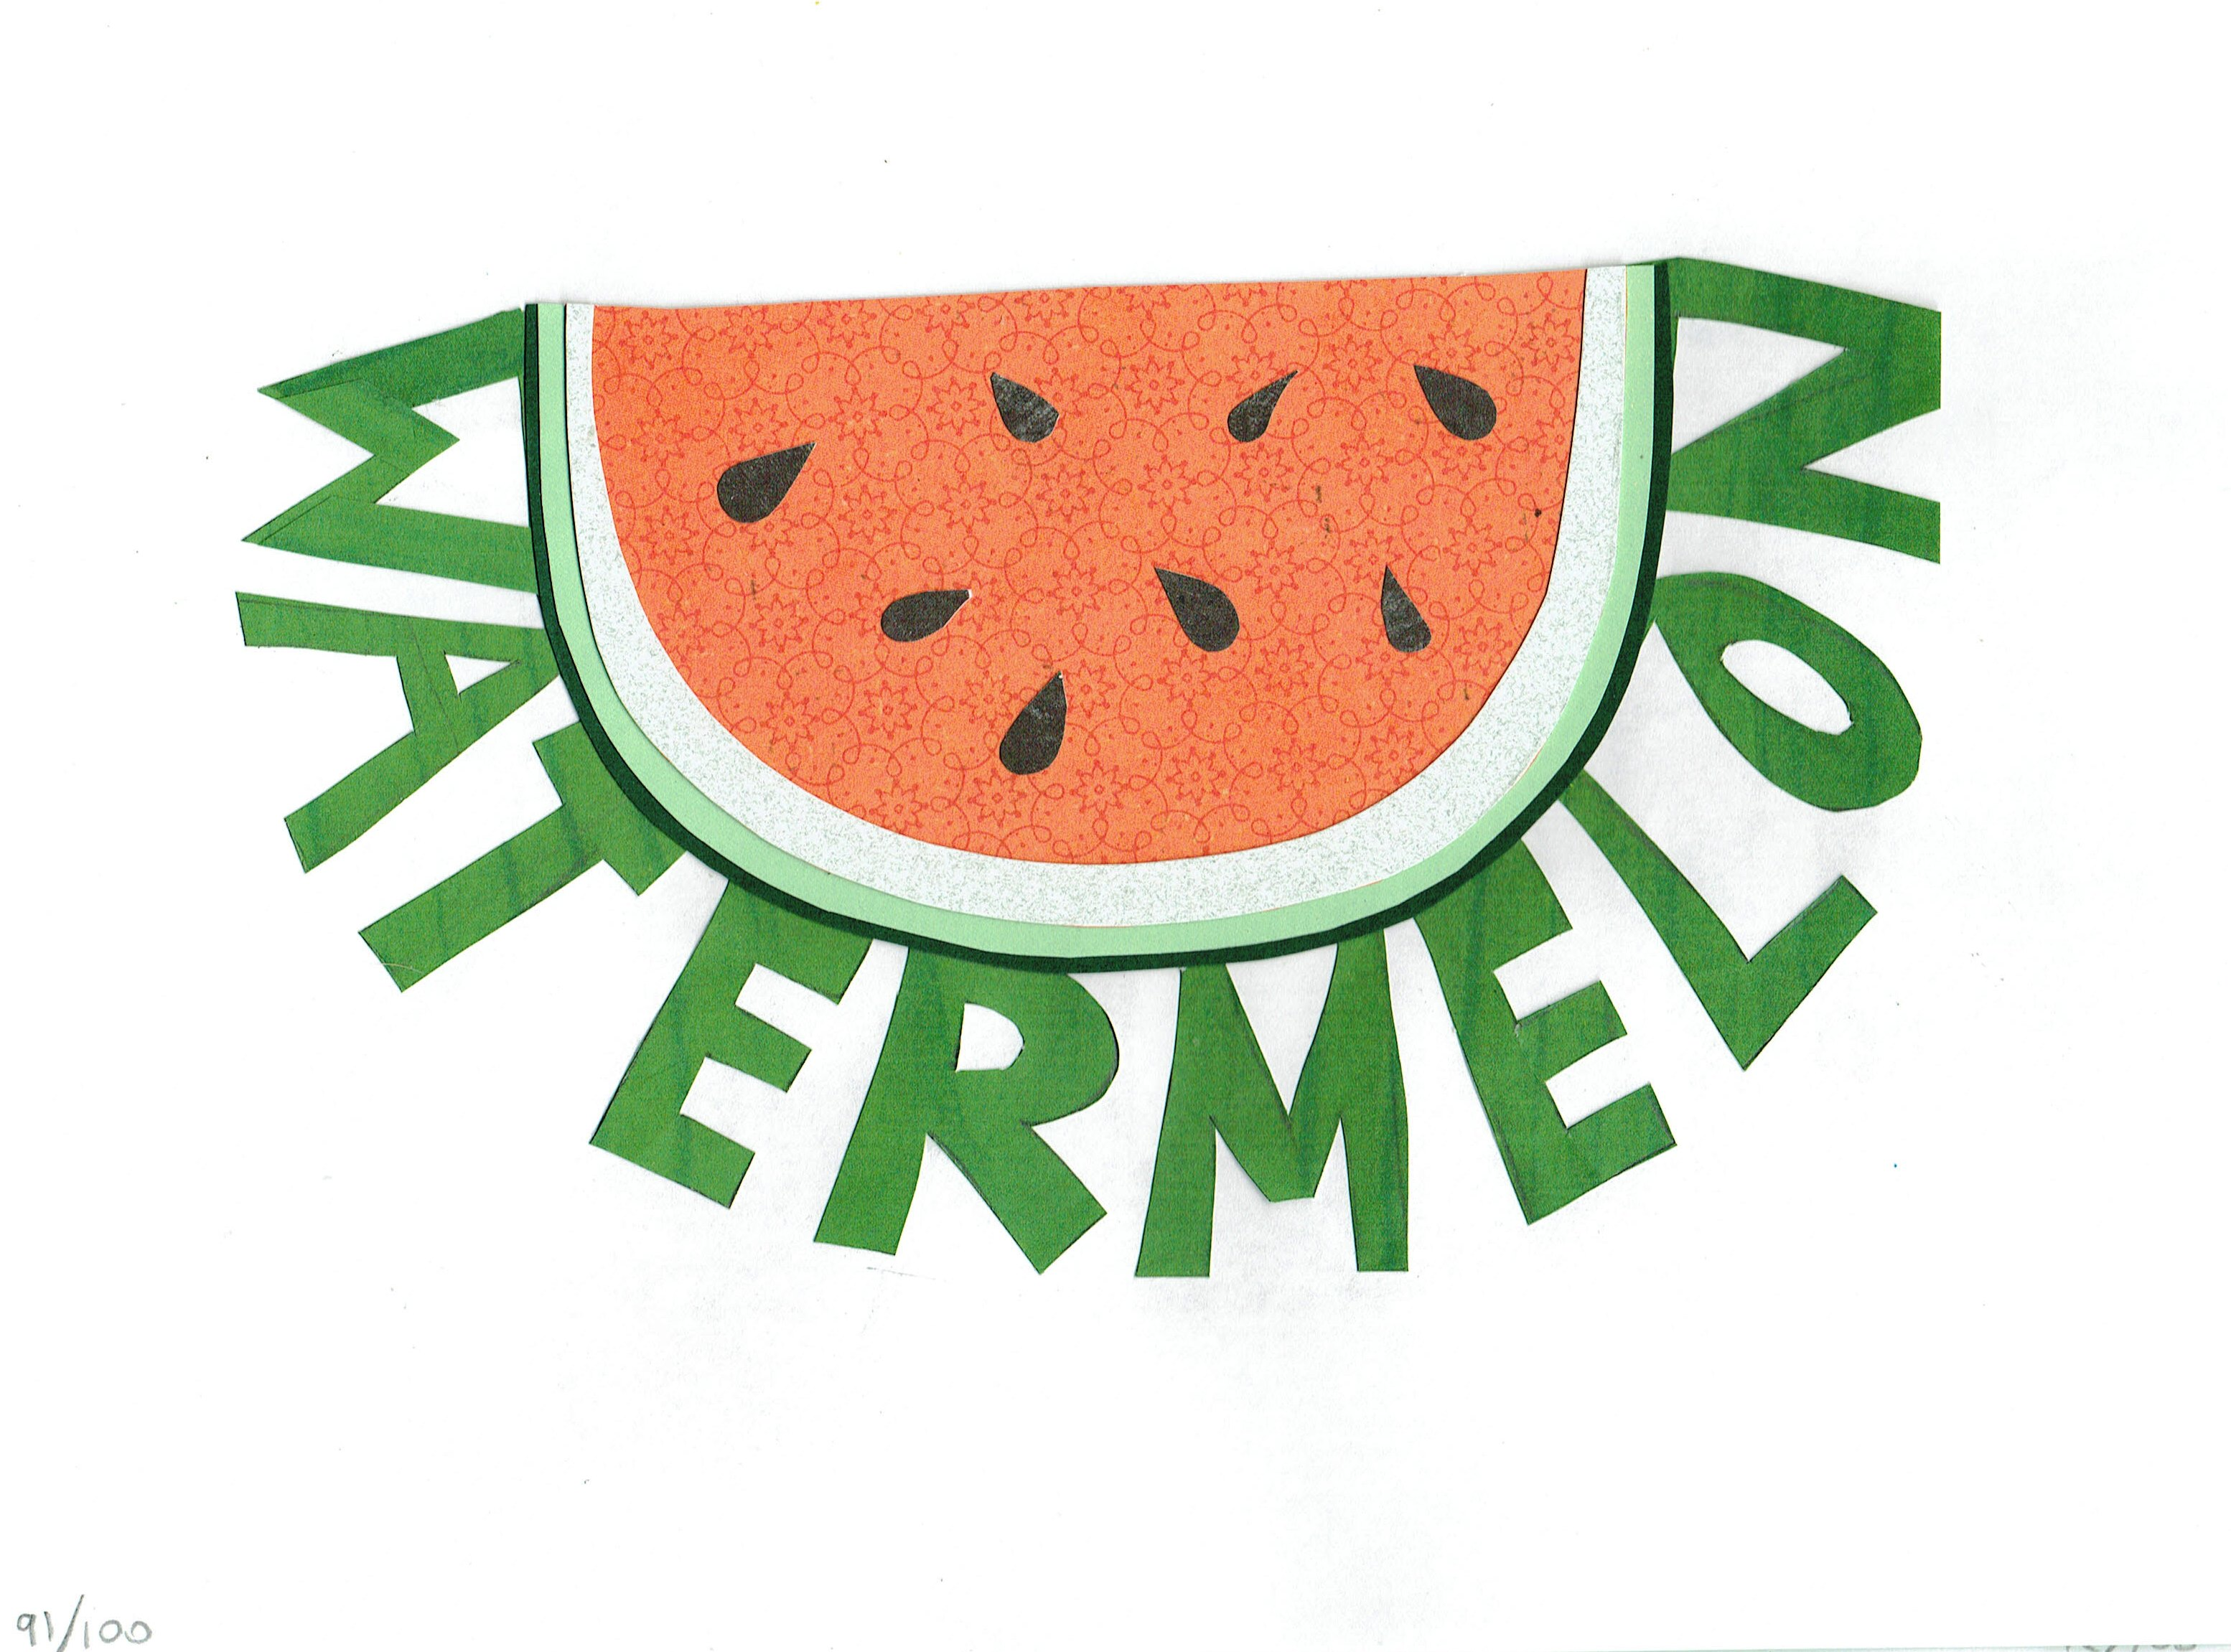 Day 91 - Watermelon